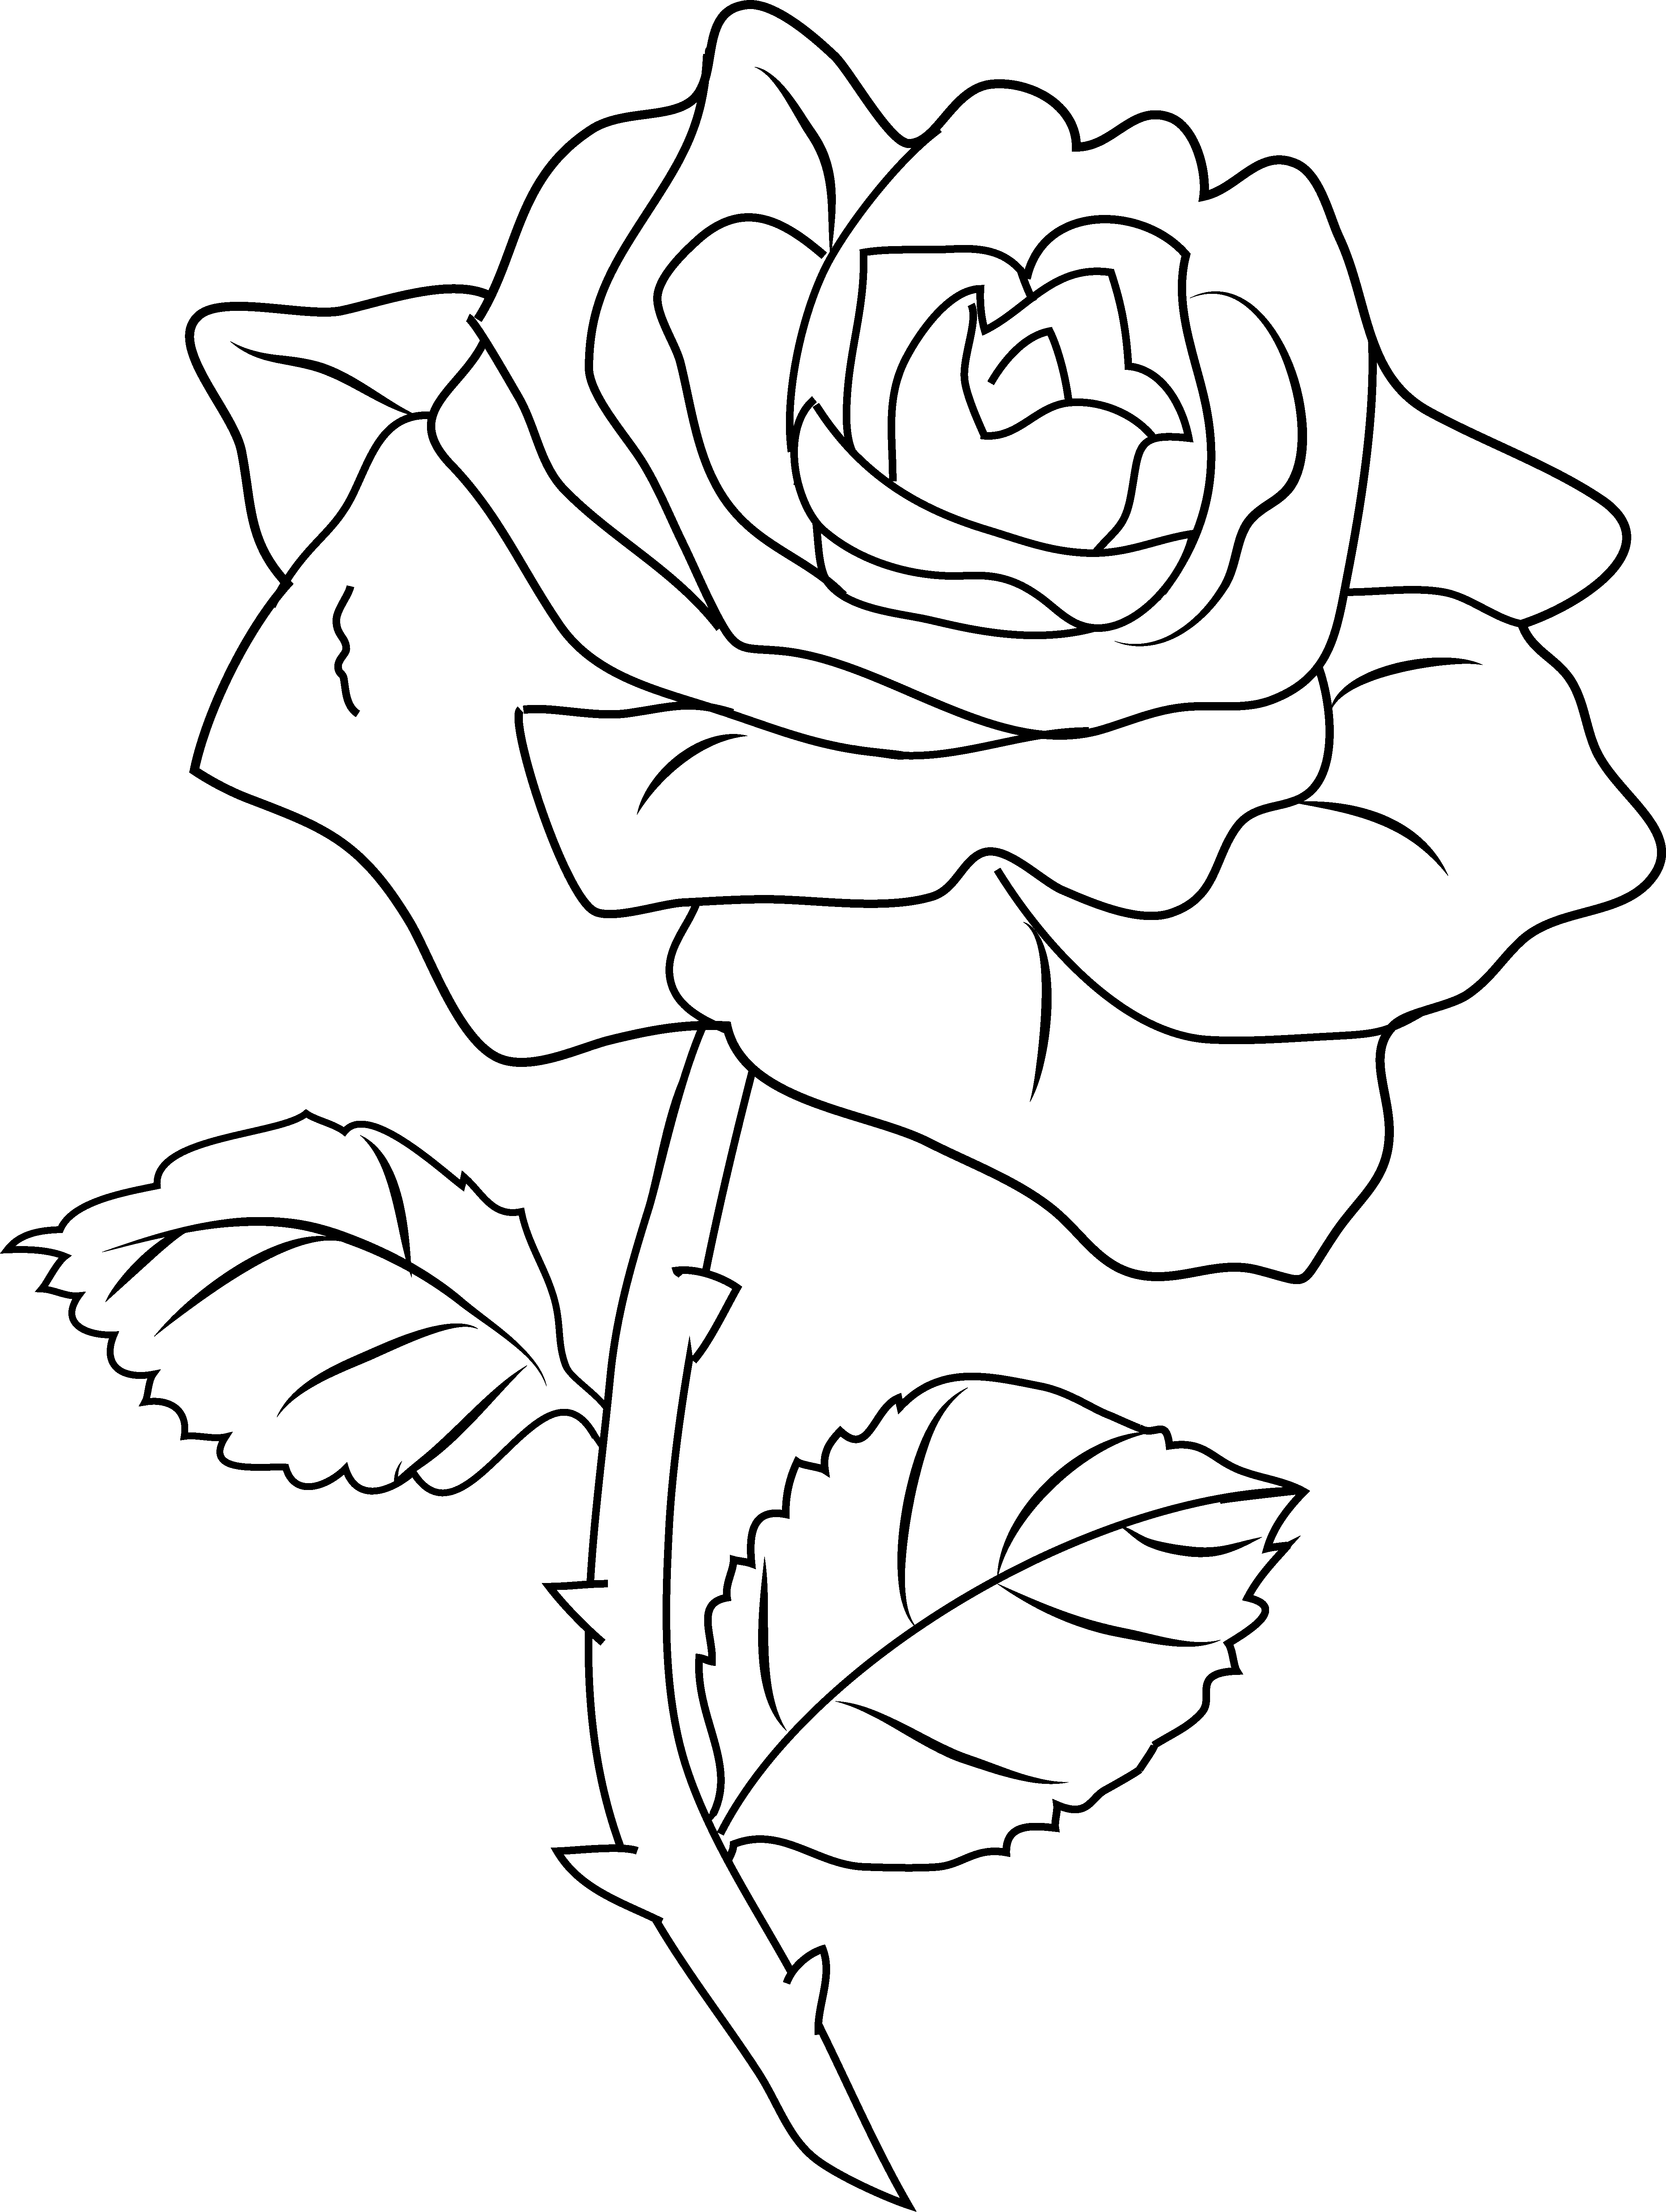 picture of a rose to color flower sketch easy rose gallery rose flower drawing of picture rose to a color